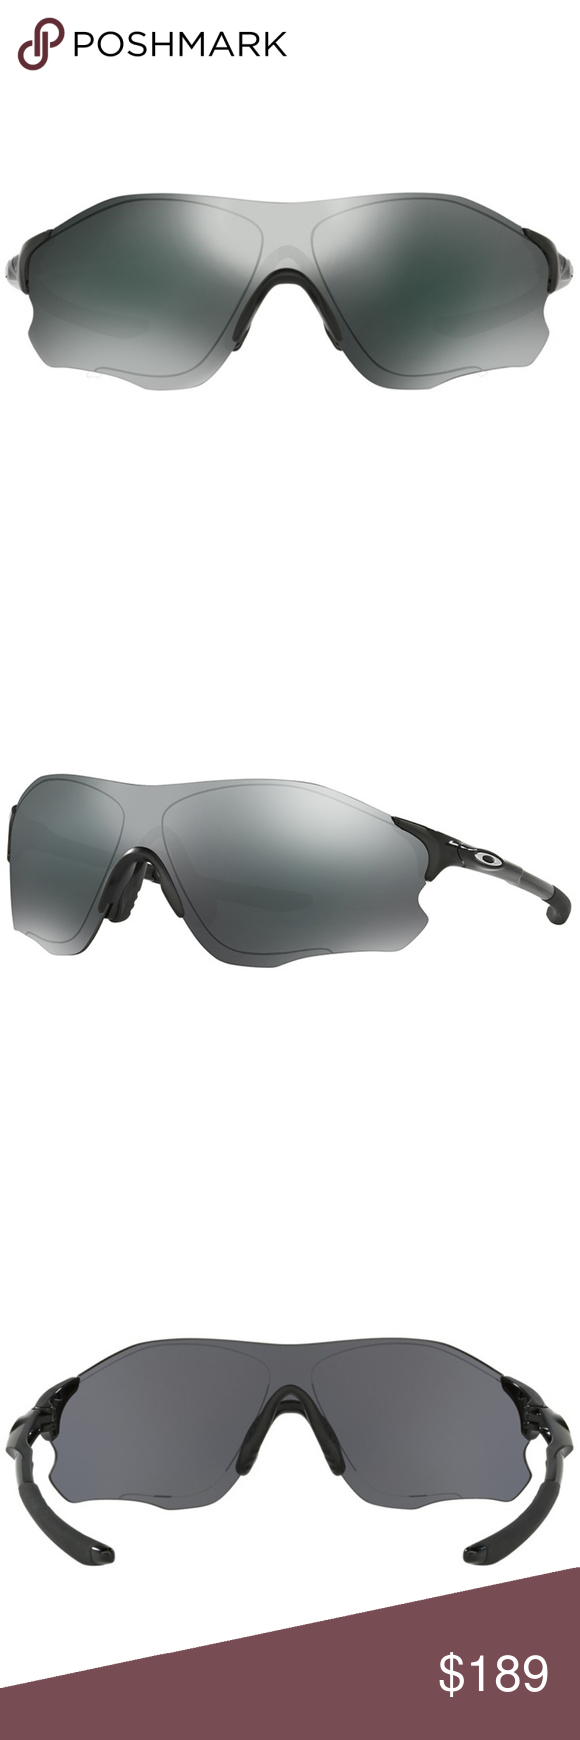 23ec341fb9 Oakley Evzero Sunglasses Polished Black Buy with confidence from an  established dealer since 2005